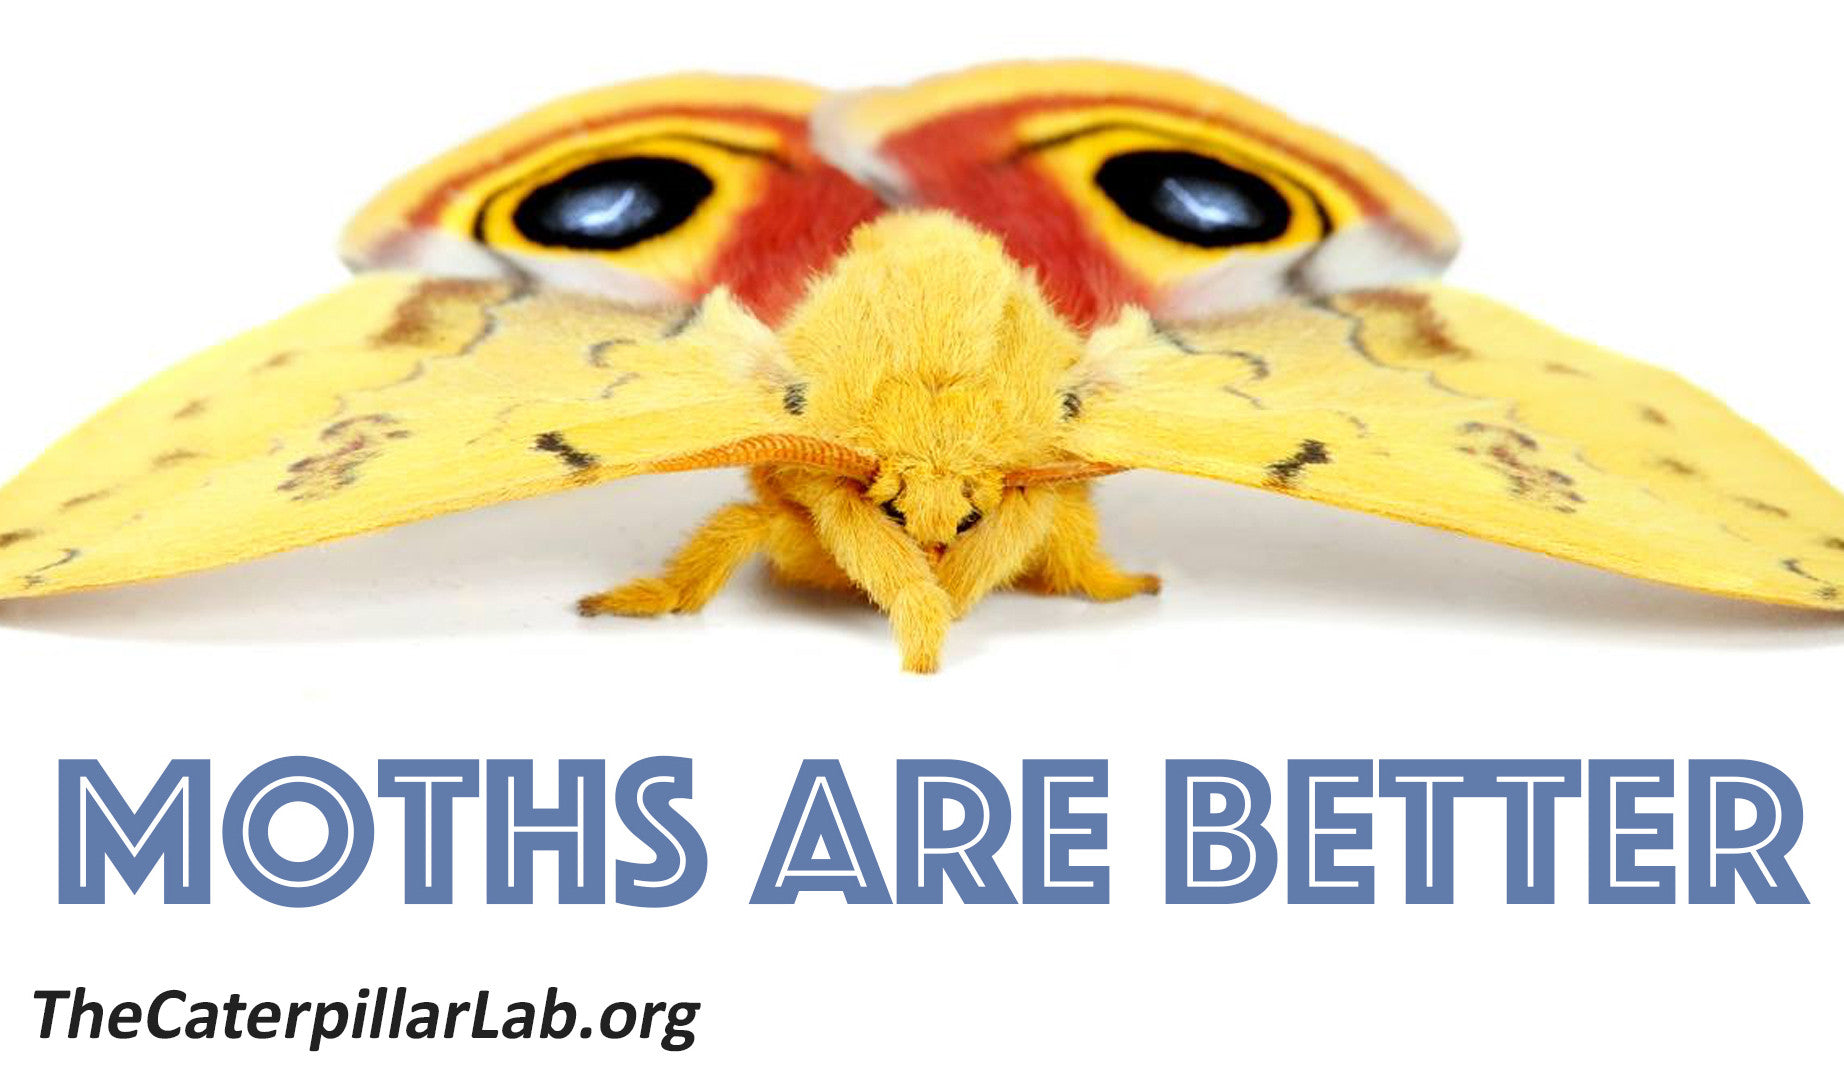 """MOTHS ARE BETTER"" Bumper Sticker"